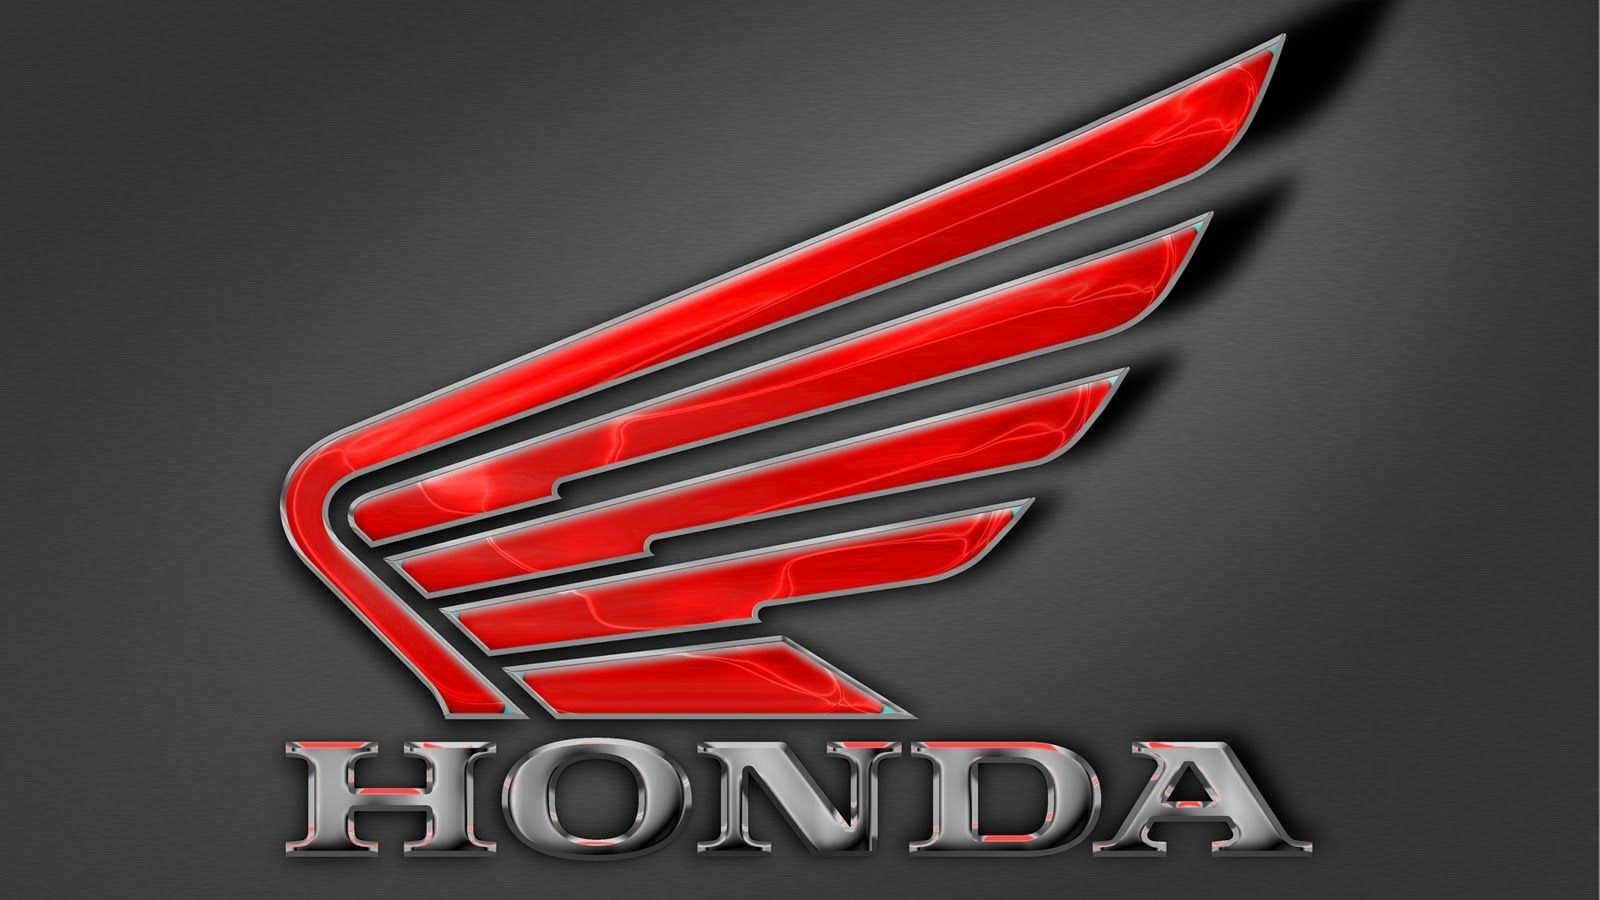 Honda Motorcycle Logo Wallpaper